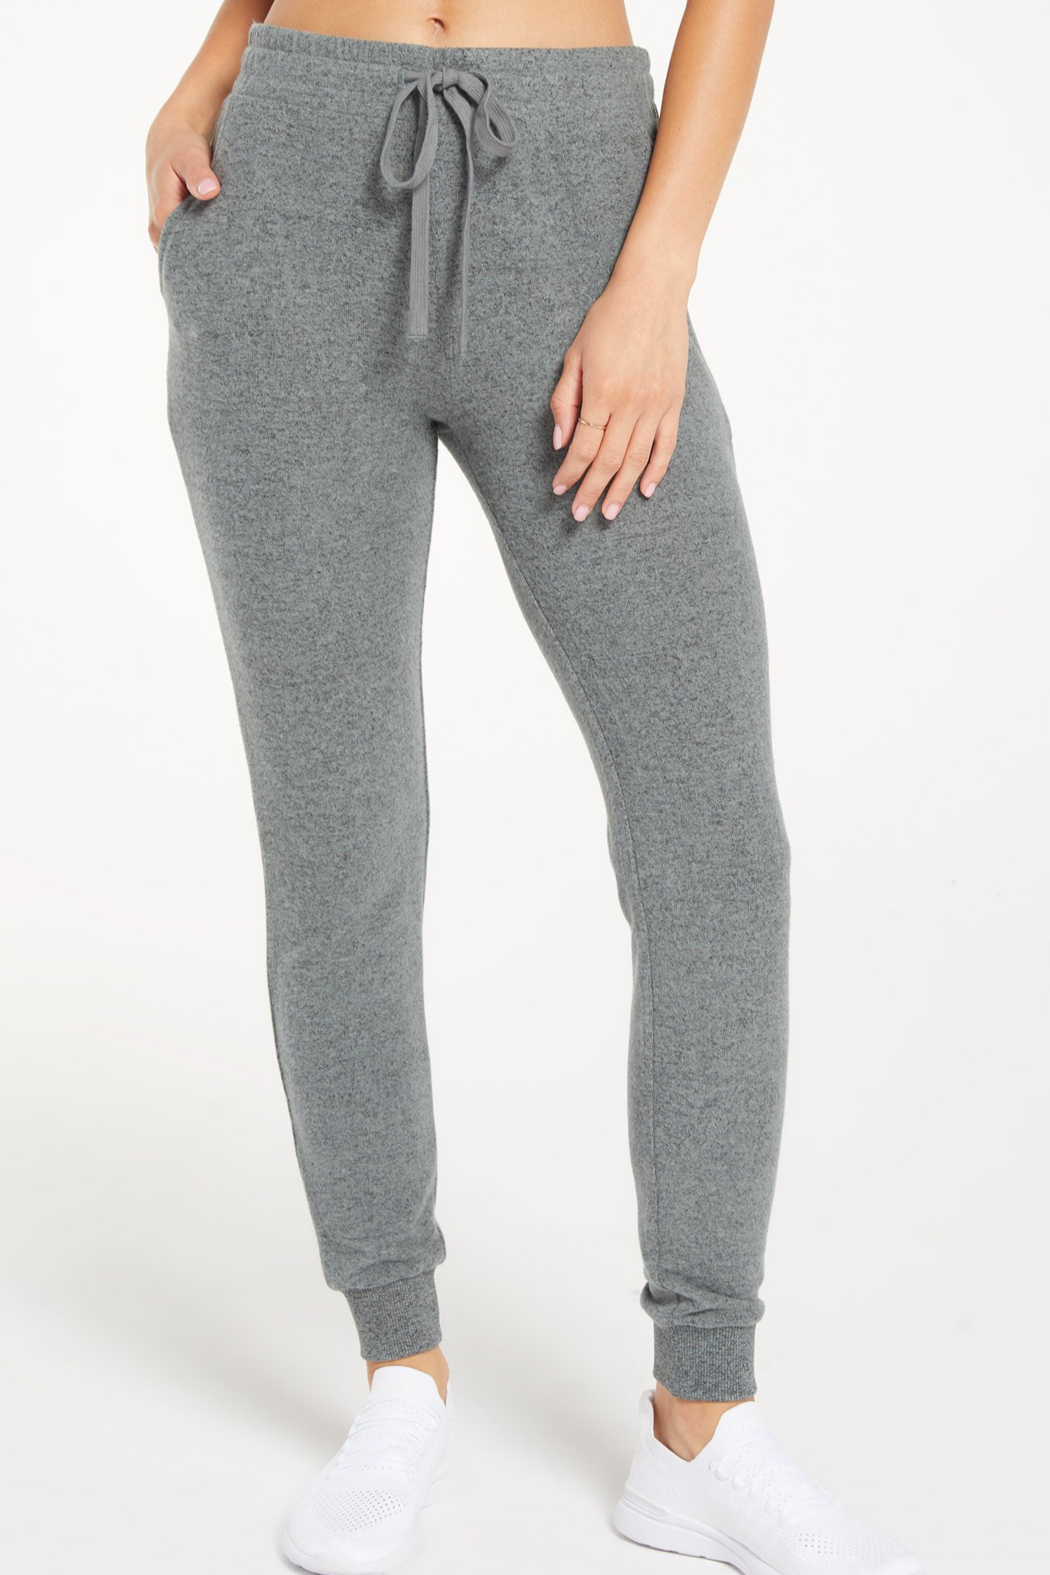 z supply Marled Jogger Pant - Front Cropped Image